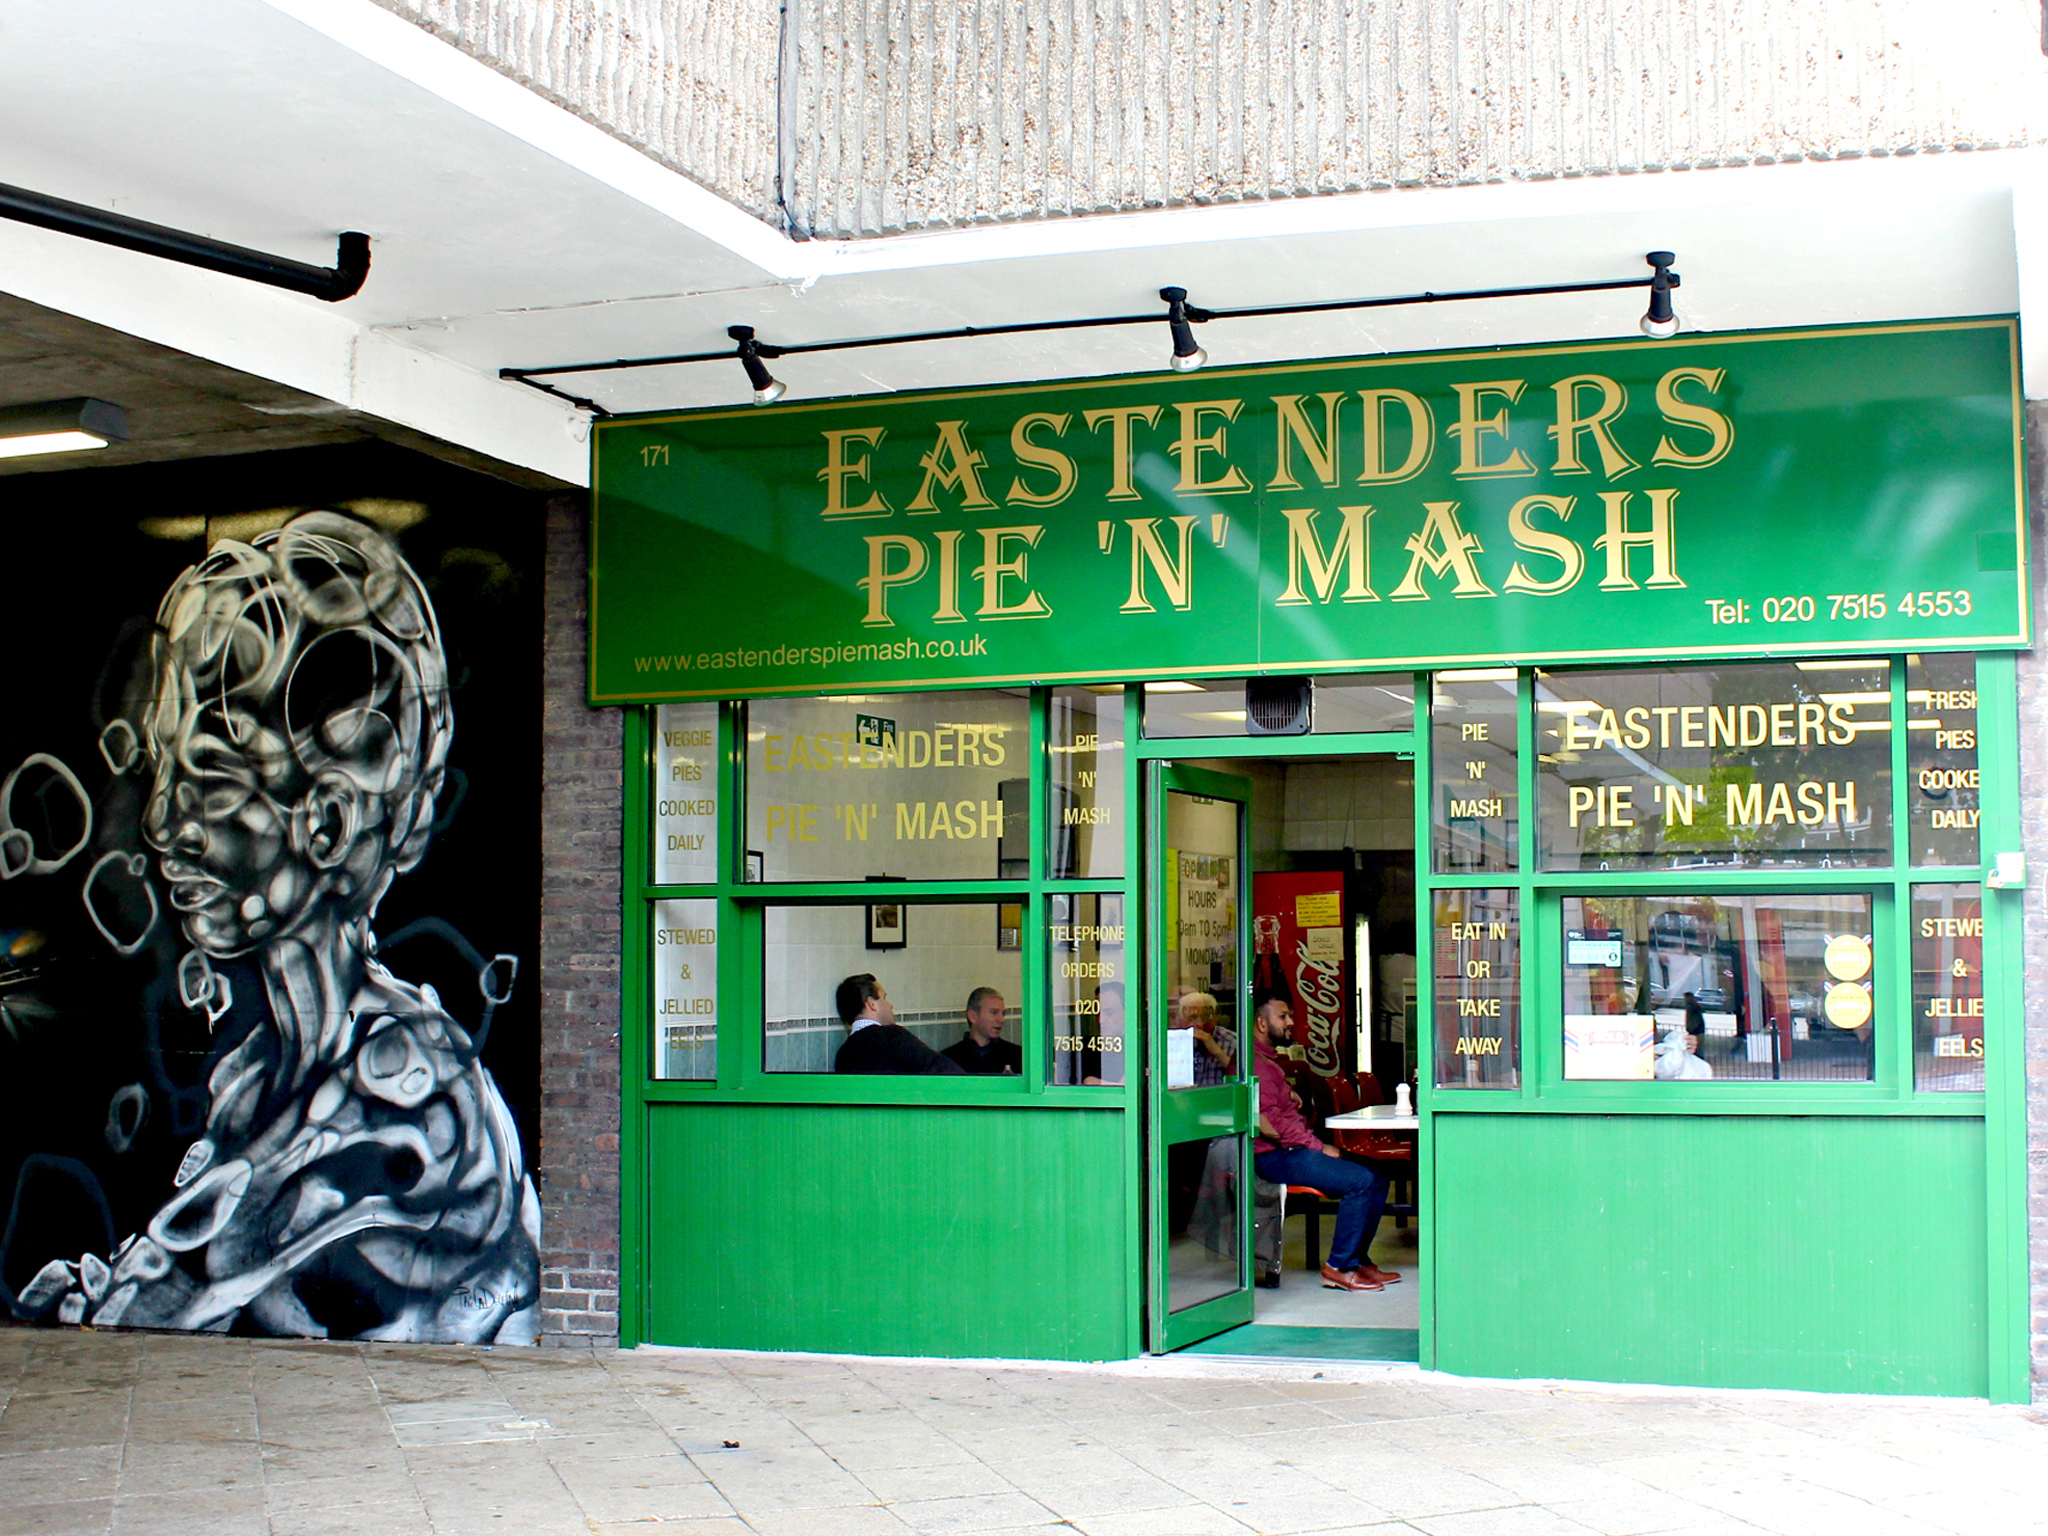 London's best pie & mash shops, Eastenders pie & mash